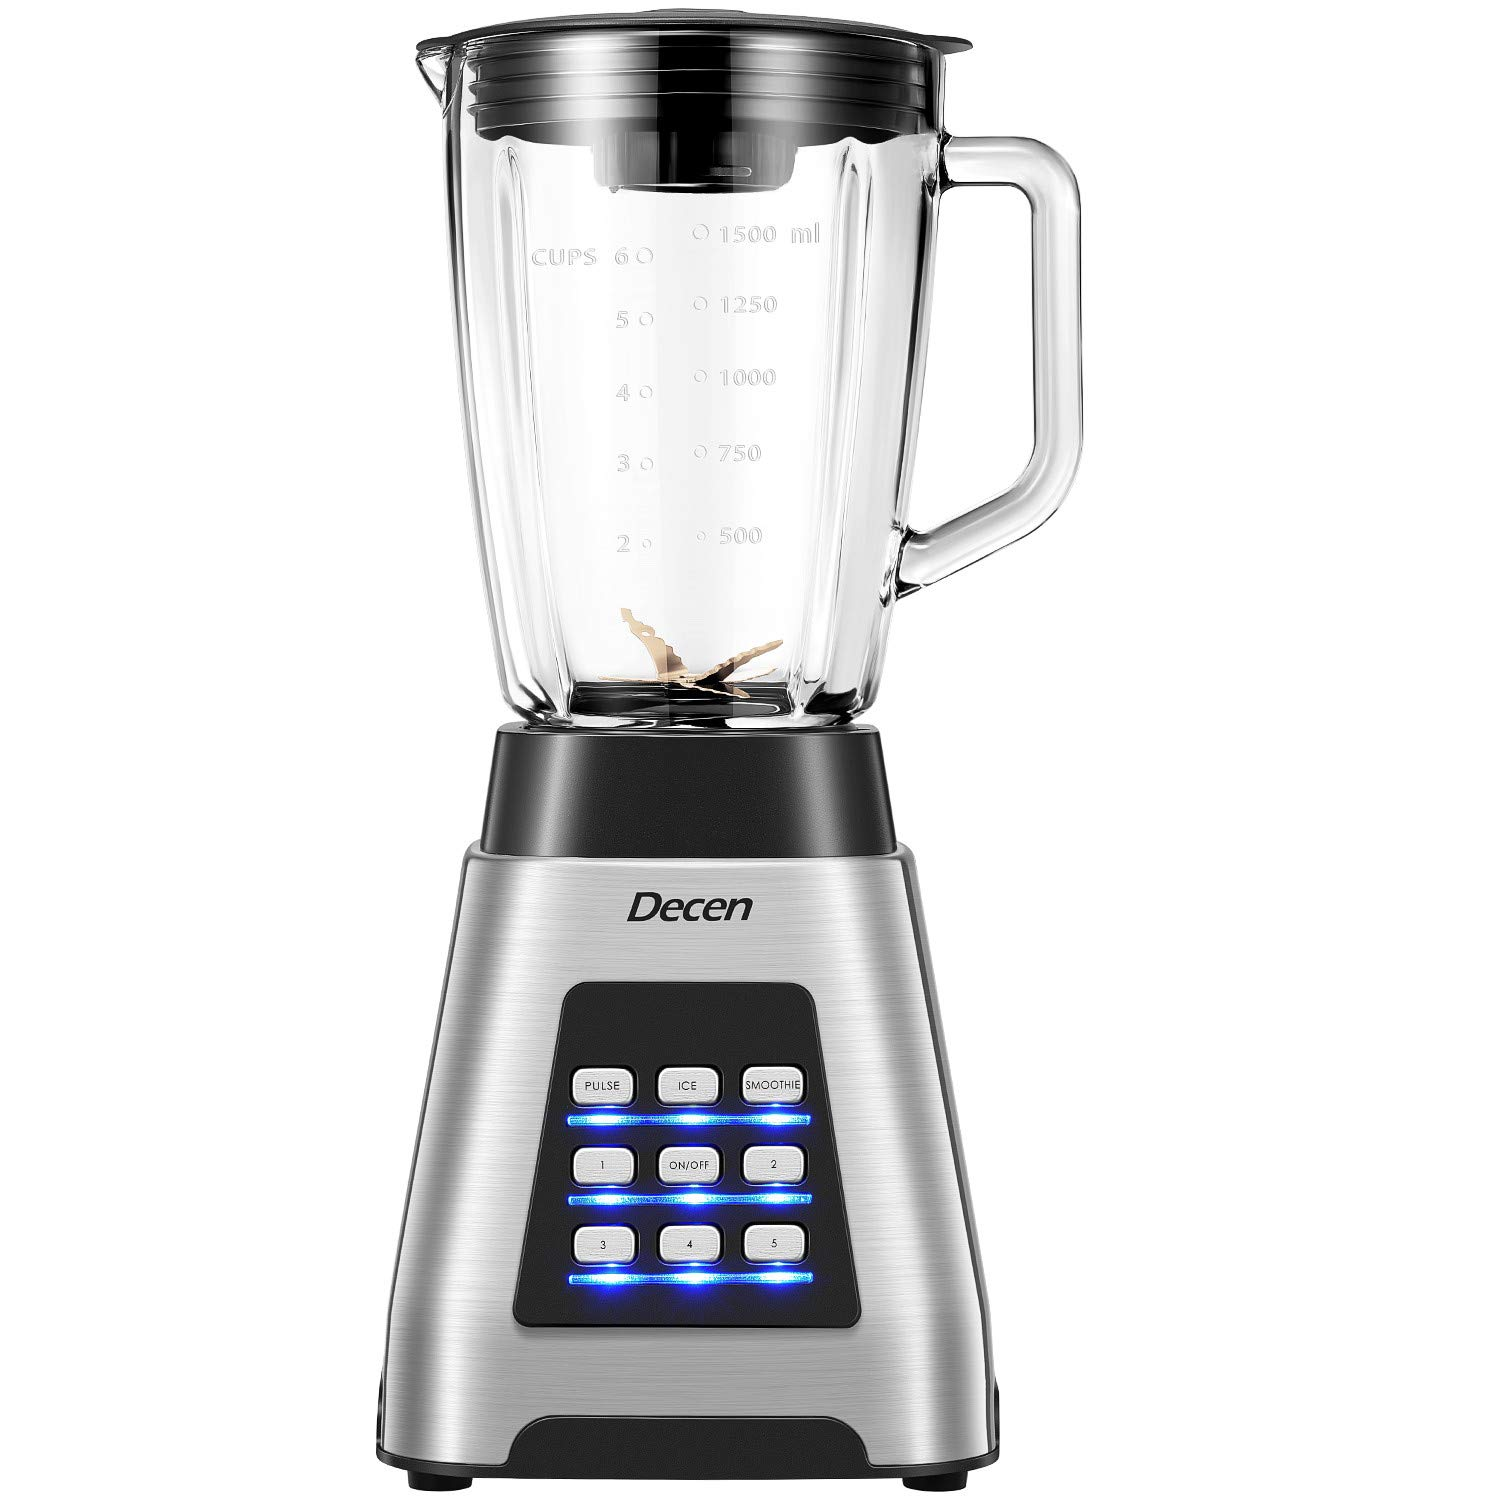 Save Over 55% on Decen Blender...